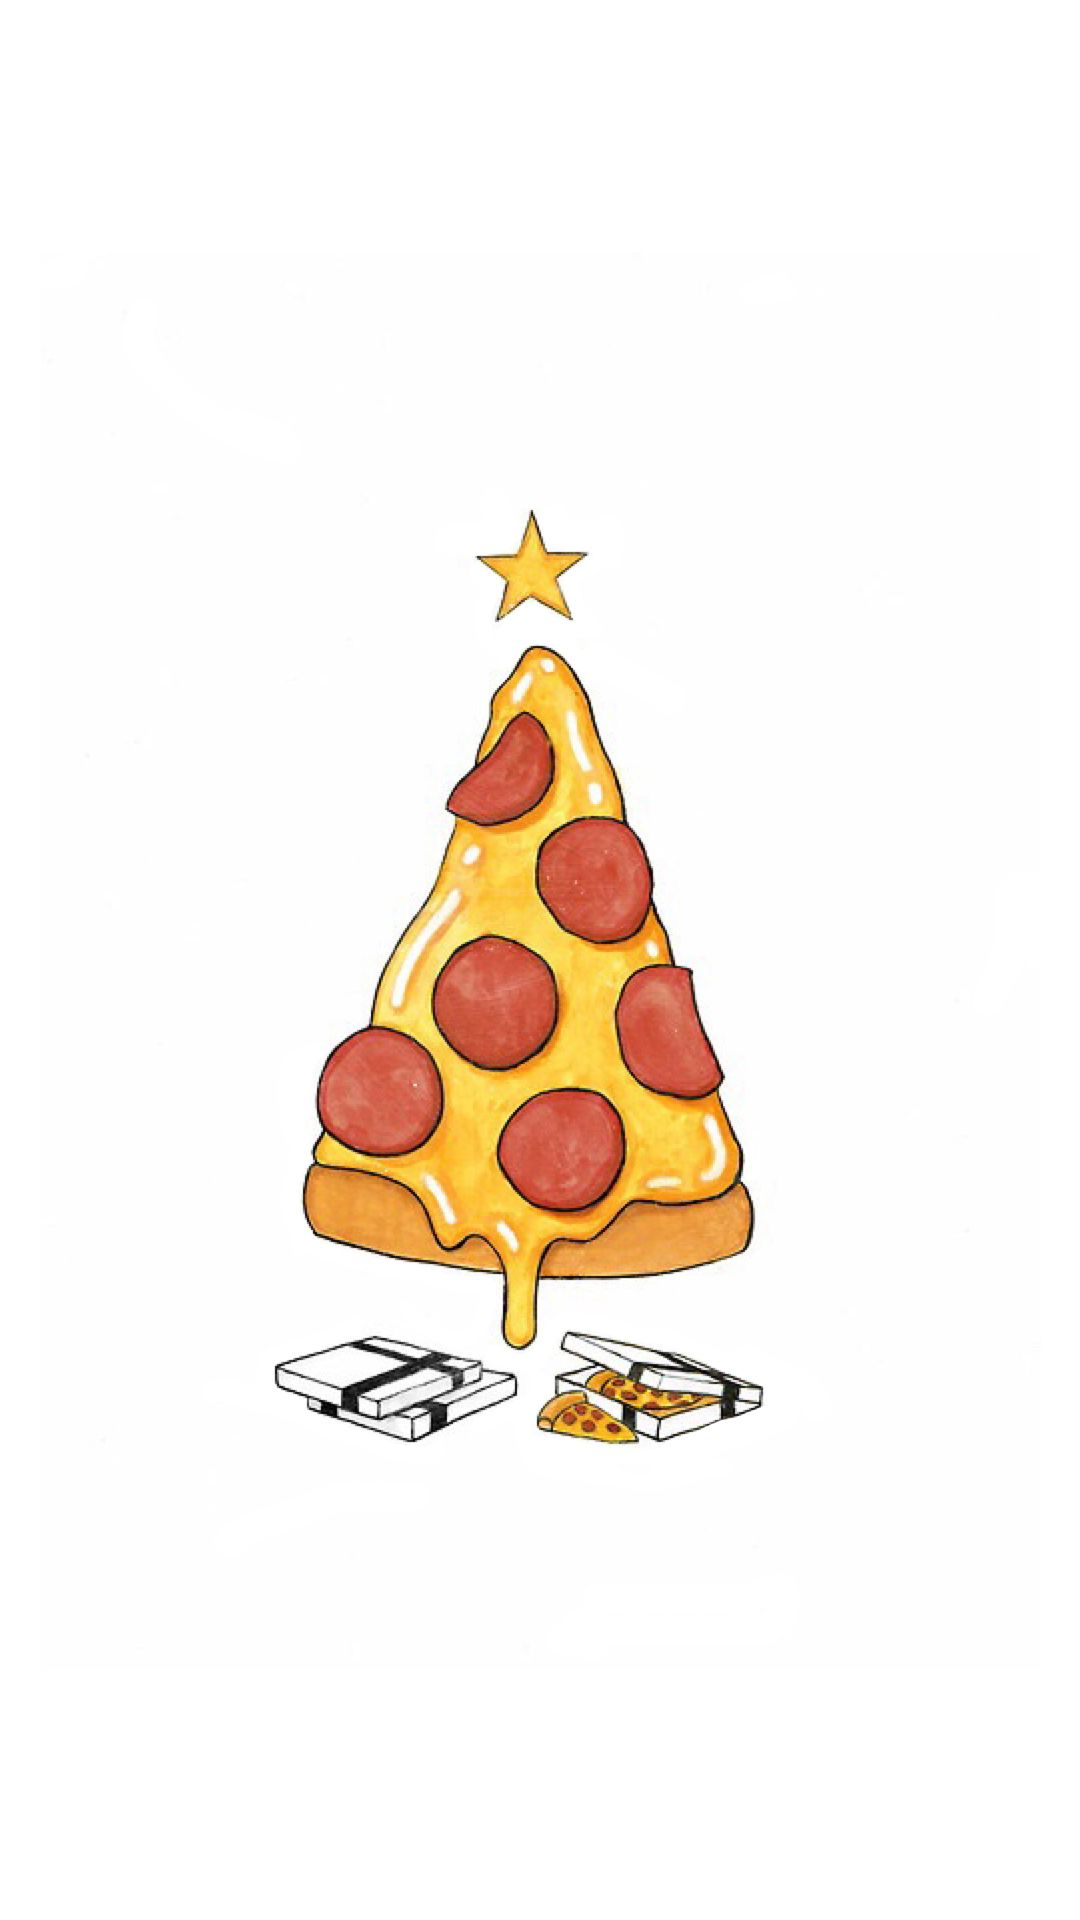 1080x1920 Funny Pizza Christmas Tree Android Wallpaper free download